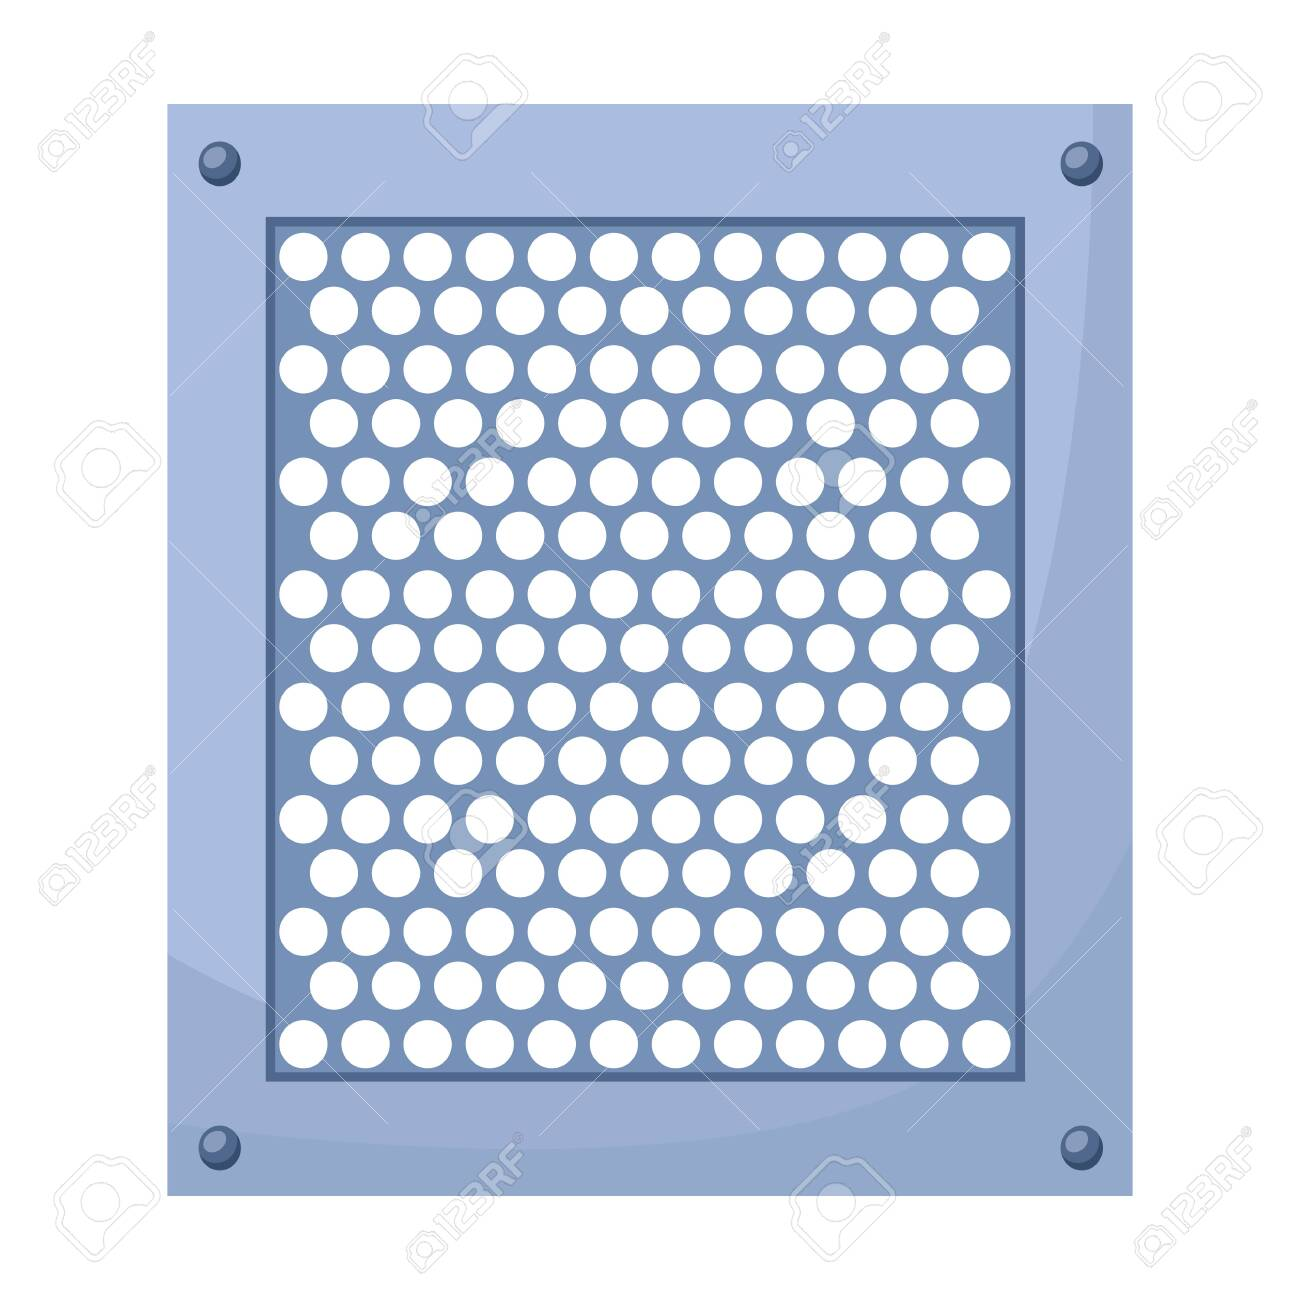 Ventilation grate vector icon.Cartoon vector icon isolated on white background ventilation grate. - 139248357